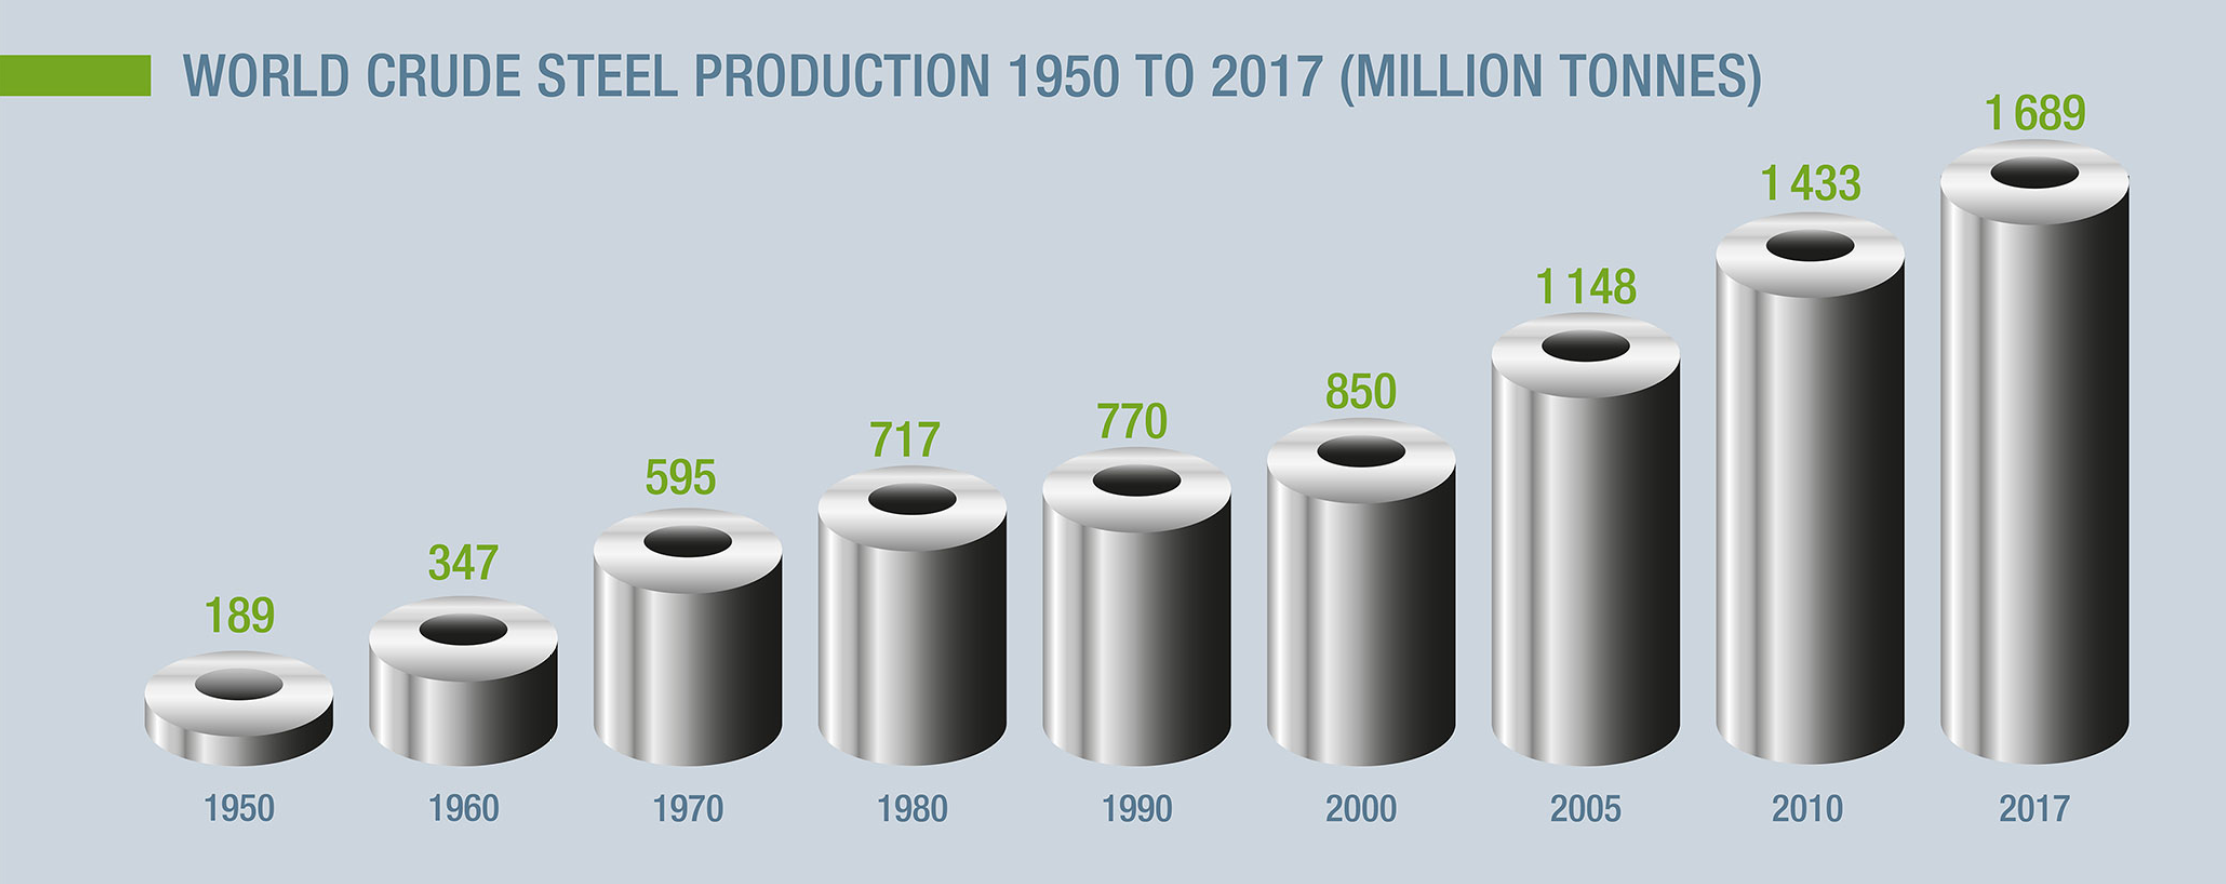 (crude-steel-production-evolution